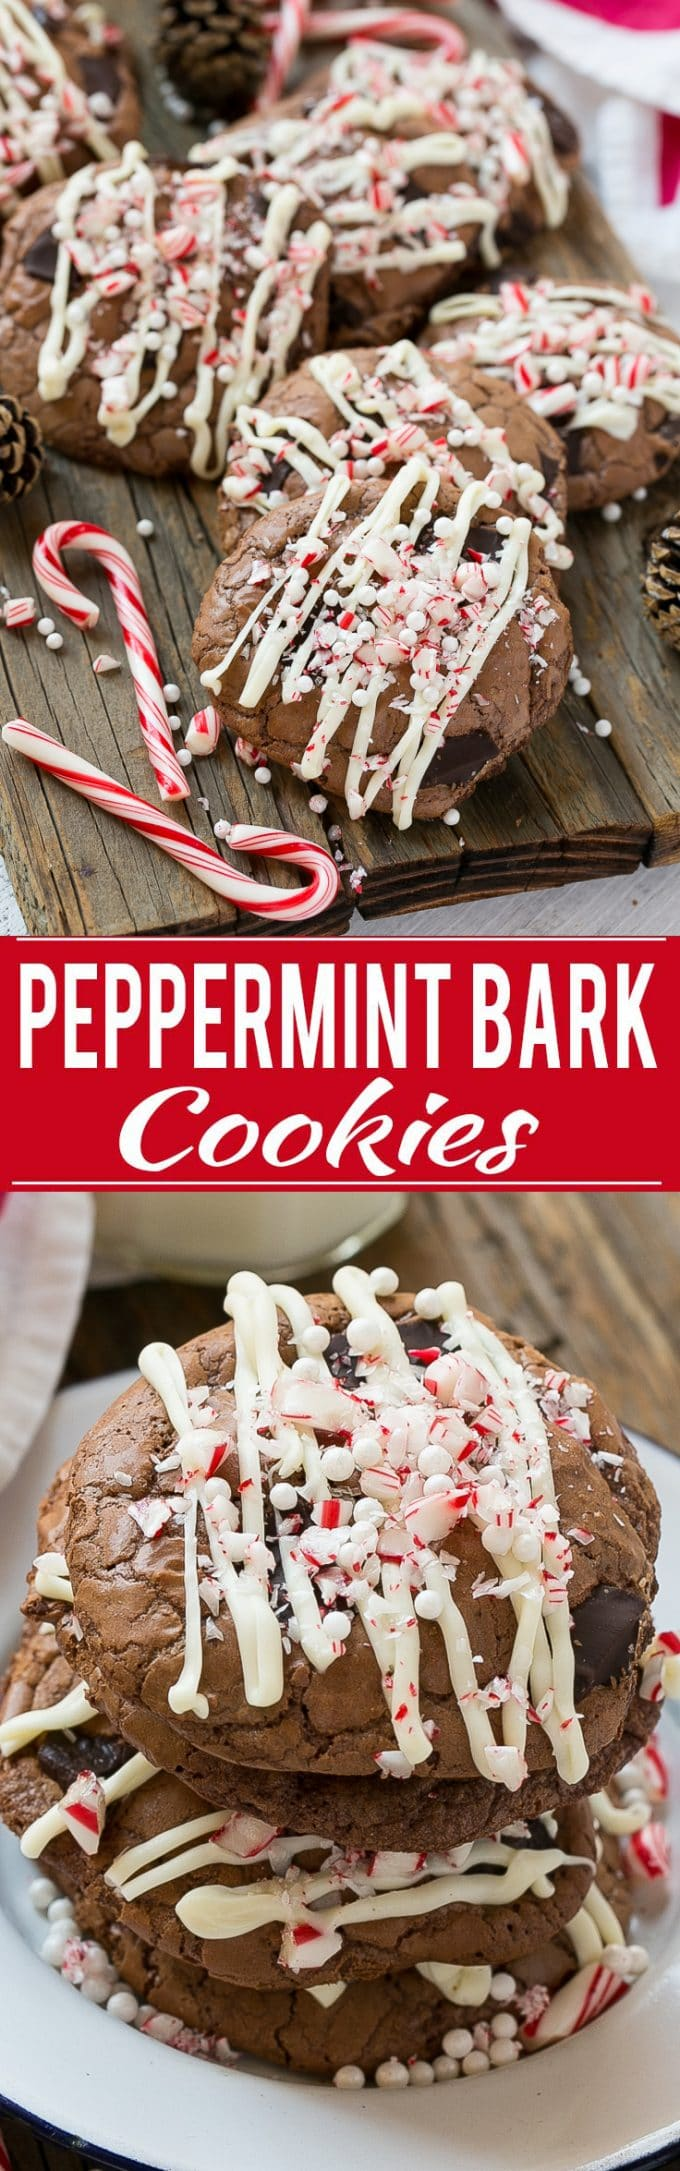 Peppermint Bark Cookie Recipe | Peppermint Bark Cookies | Best Peppermint Bark Cookies | Easy Peppermint Bark Cookies | Holiday Peppermint Bark Cookies | Peppermint Bark Cookies | Chocolate Peppermint Cookies